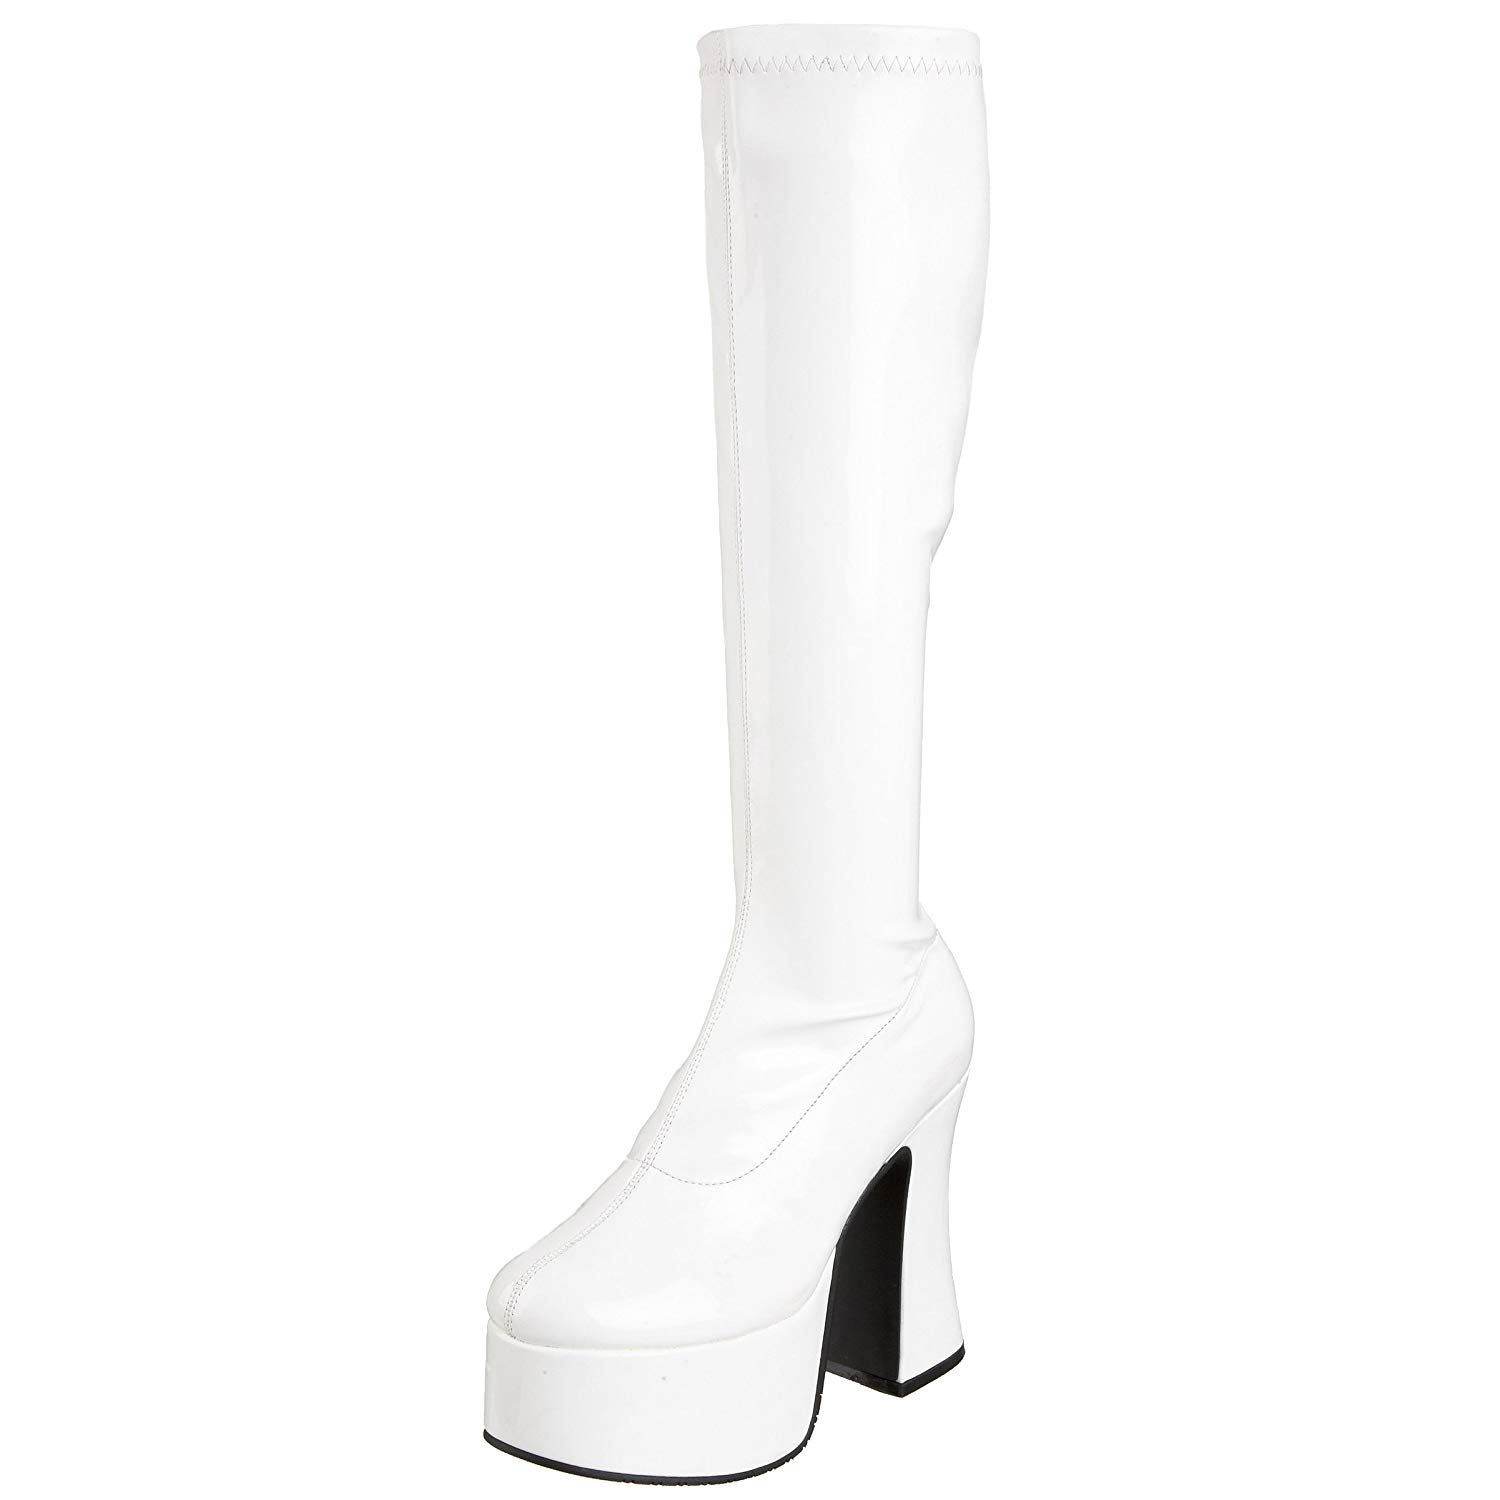 40e20c4487b8 Get Quotations · Summitfashions 5 Inch Trendy Gothic Knee High Boot  Platform Knee Boots White Stretch Patent